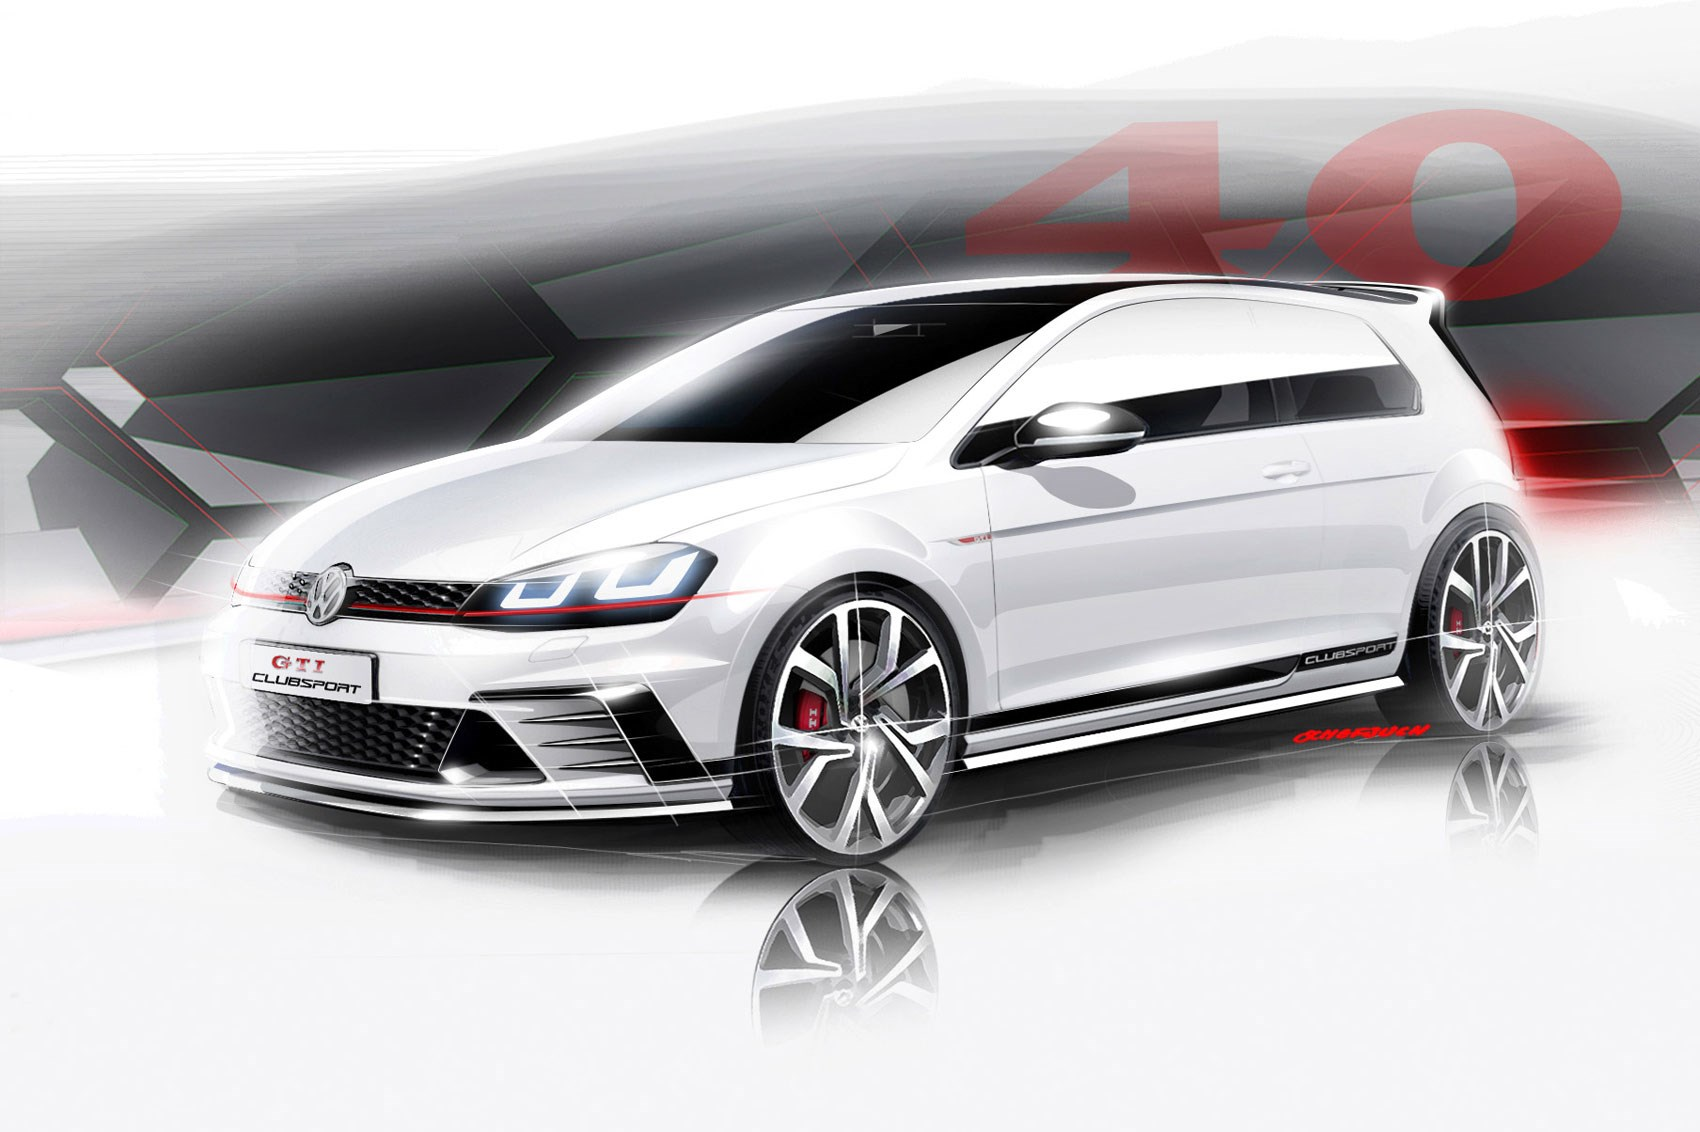 Vw Golf Gti Club Sport 2017 A Faster Kind Of Confirmed For Worthersee